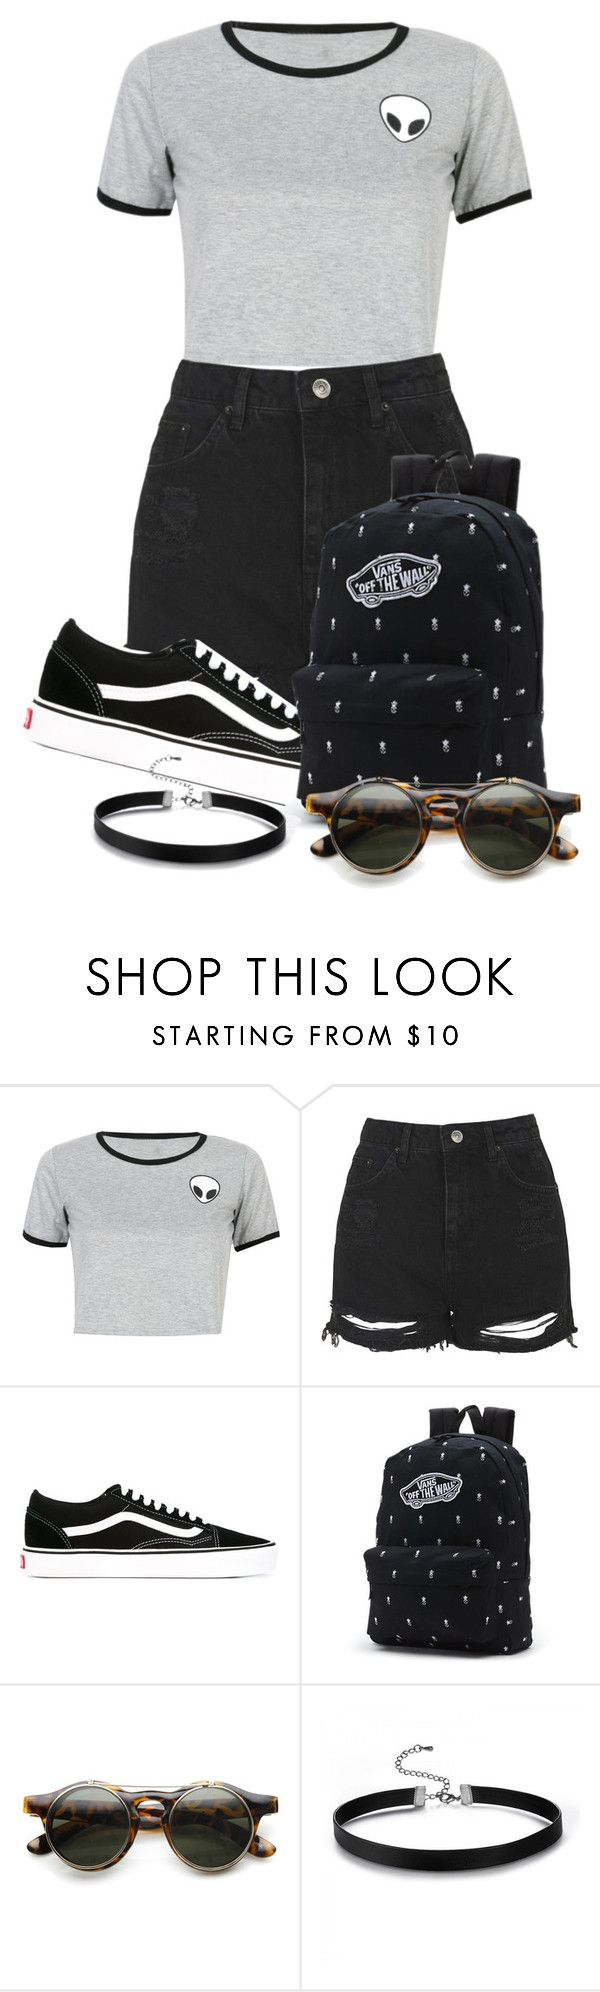 """""""Story"""" by tigerlily789 ❤ liked on Polyvore featuring WithChic, Topshop, Vans and ZeroUV"""